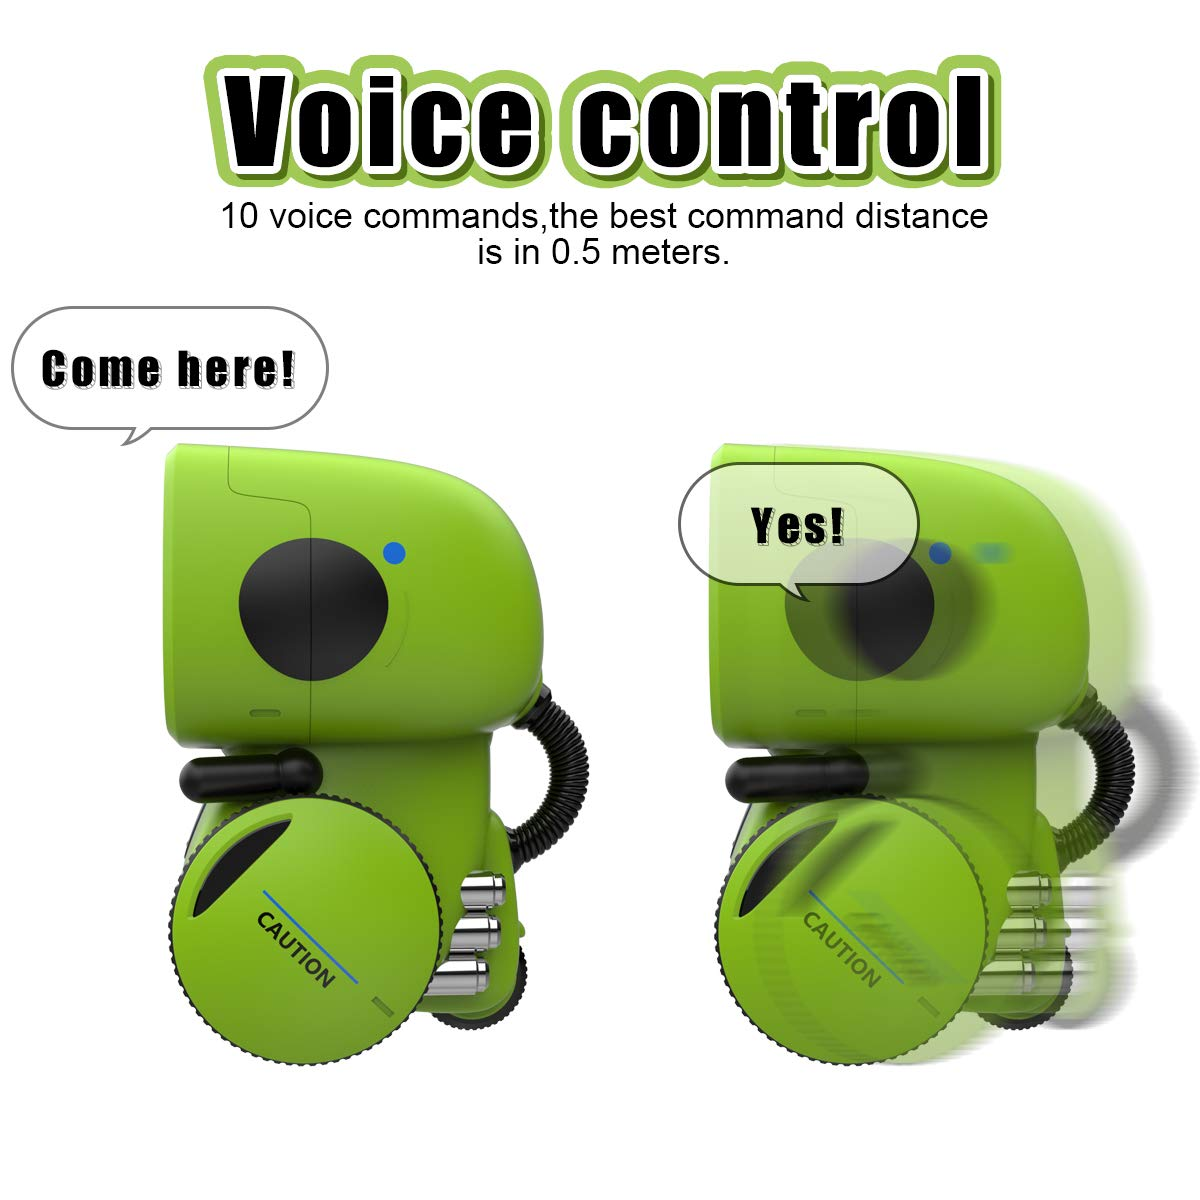 Gilobaby Kids Robot Toy, Talking Interactive Voice Controlled Touch Sensor Smart Robotics with Singing, Dancing, Repeating, Speech Recognition and Voice Recording, Gift for Kids Age 3+ (Green) by GILOBABY (Image #3)